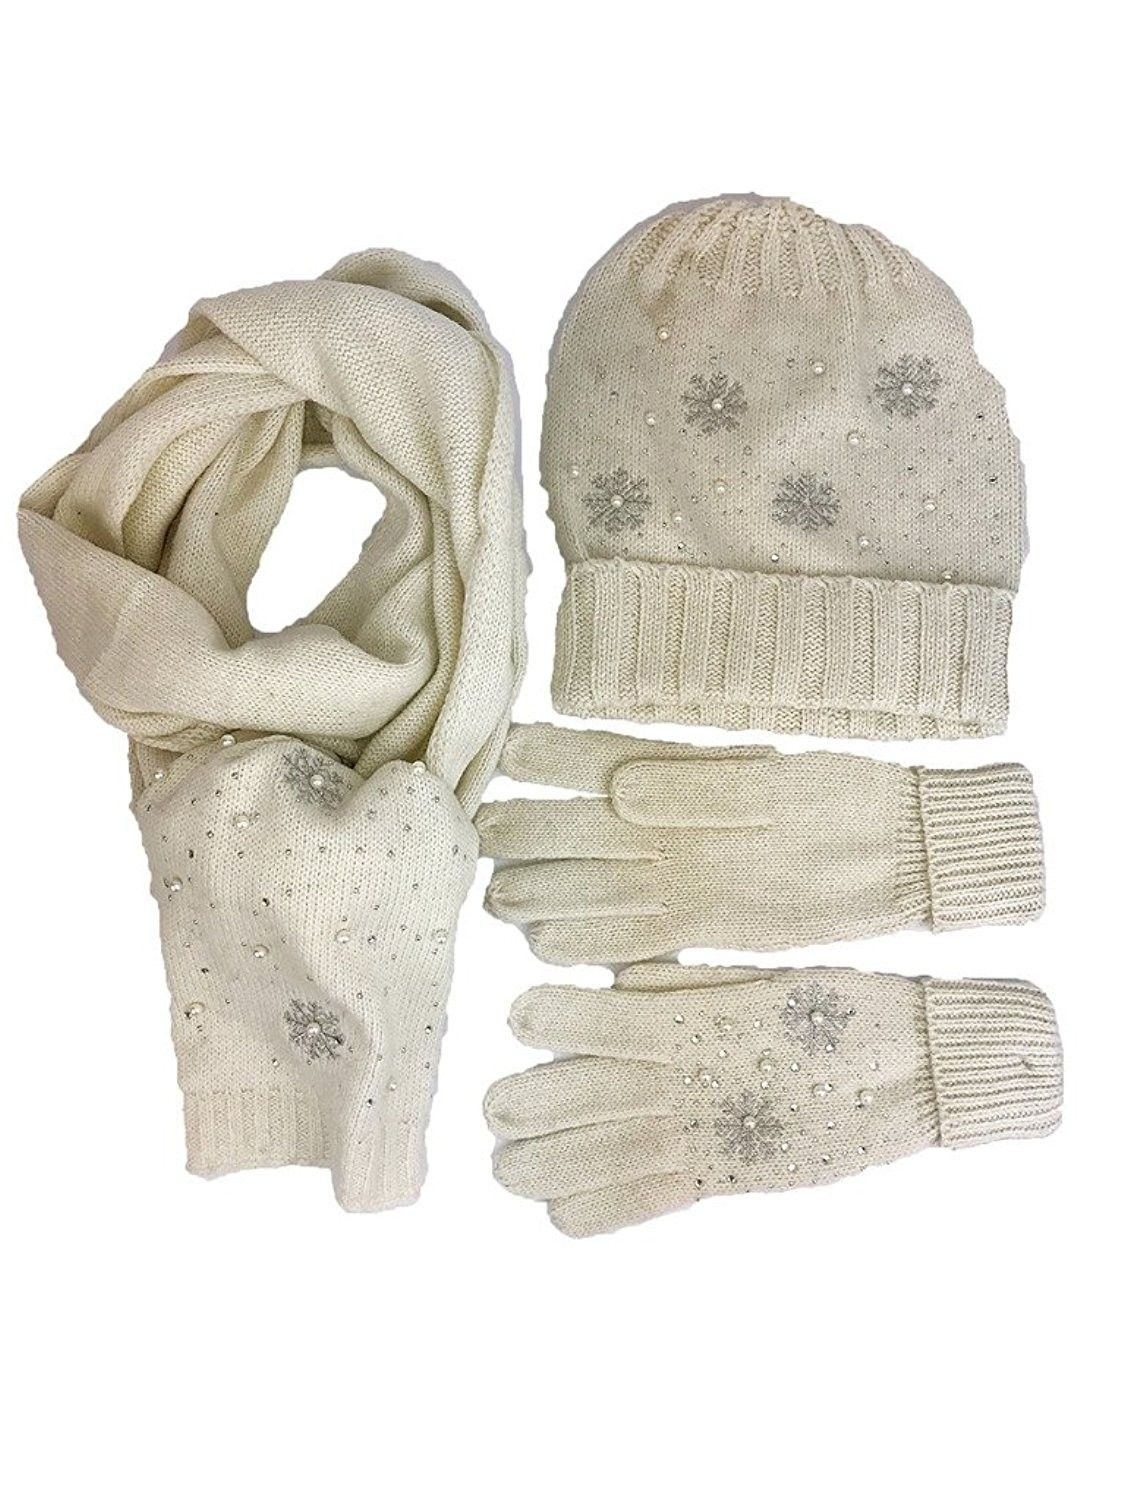 Snowflake Series Wool Blended Gift Sets Hat Glove And Scarf With Pearl Design Beige Cc183xs20yw Pearl Design Hat Designs Wool Blend